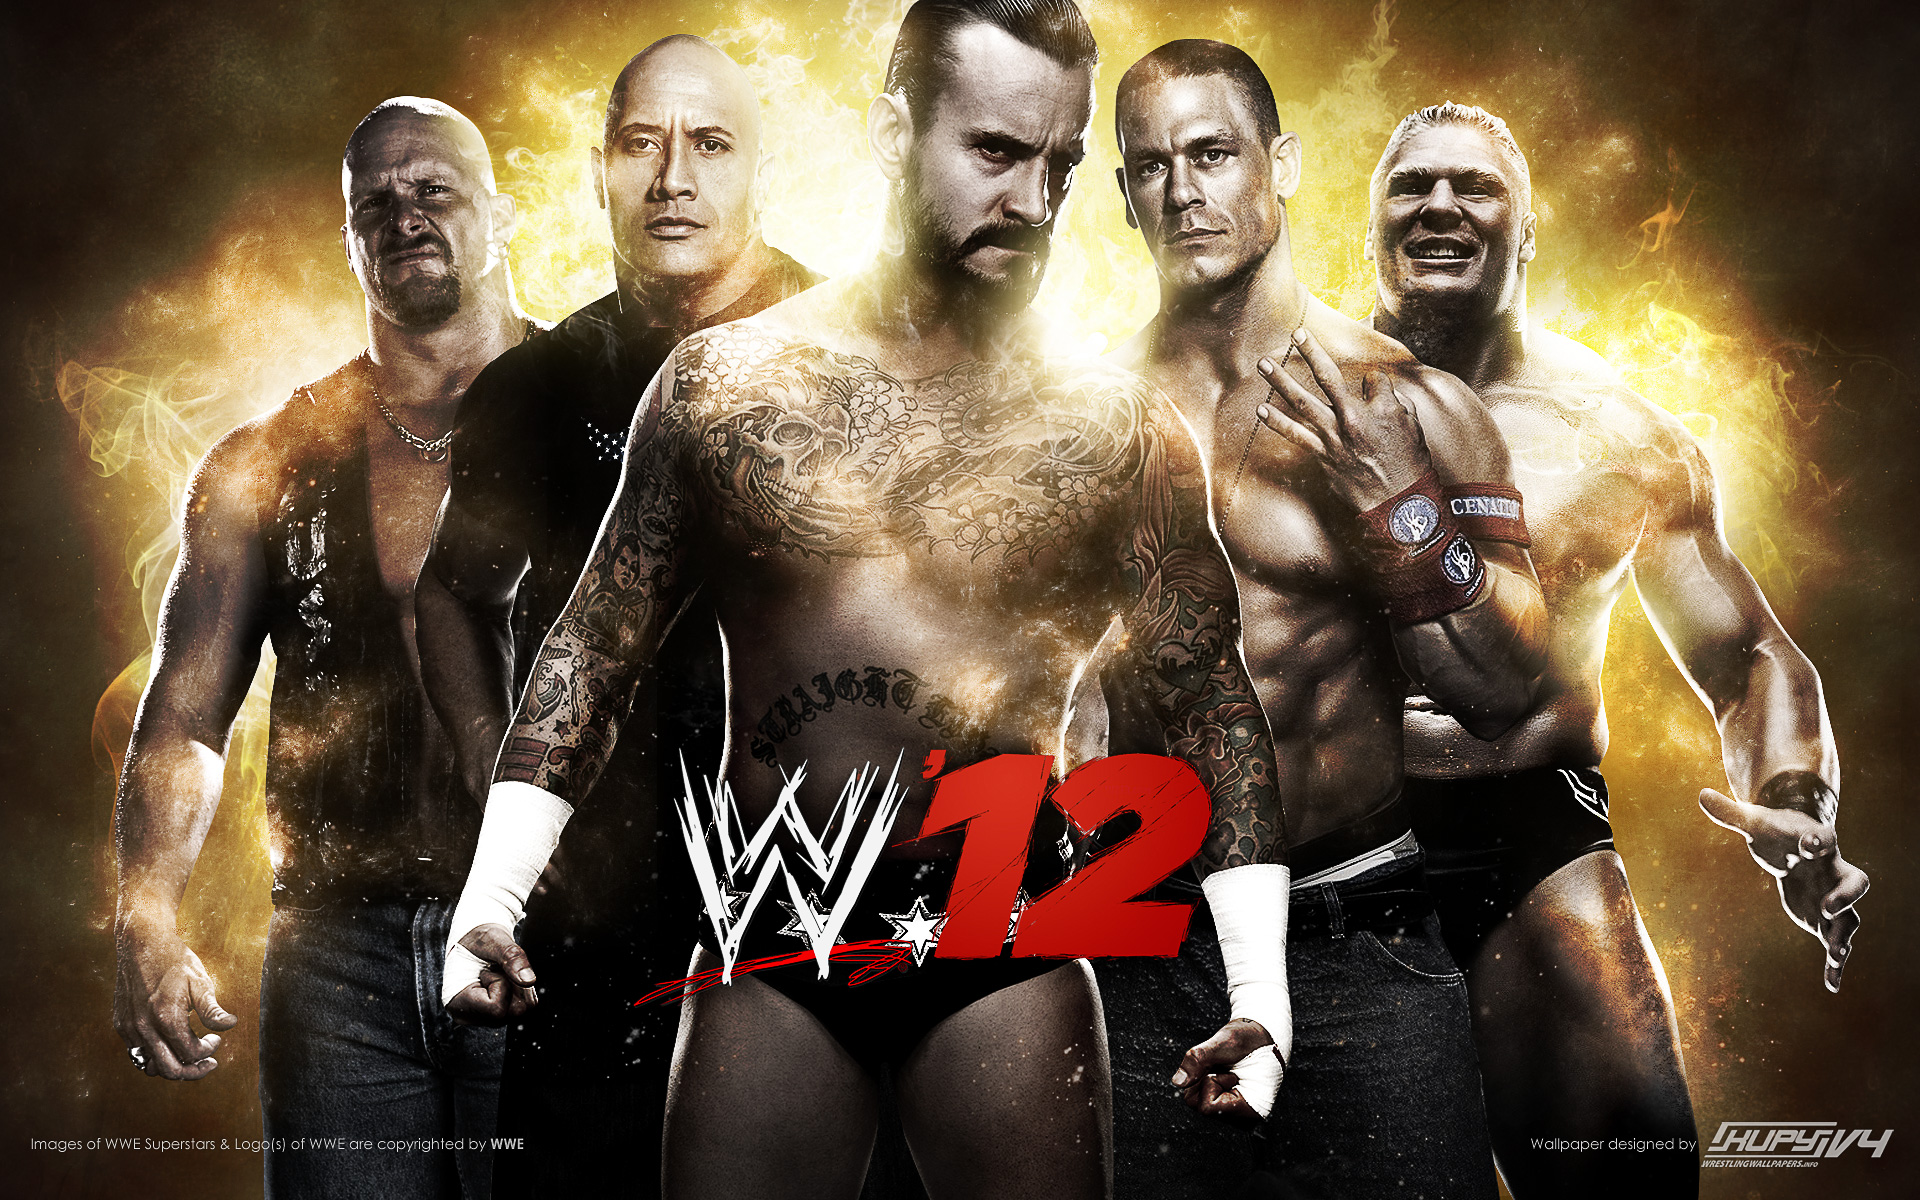 WWE 12 Wallpaper 1920x1200